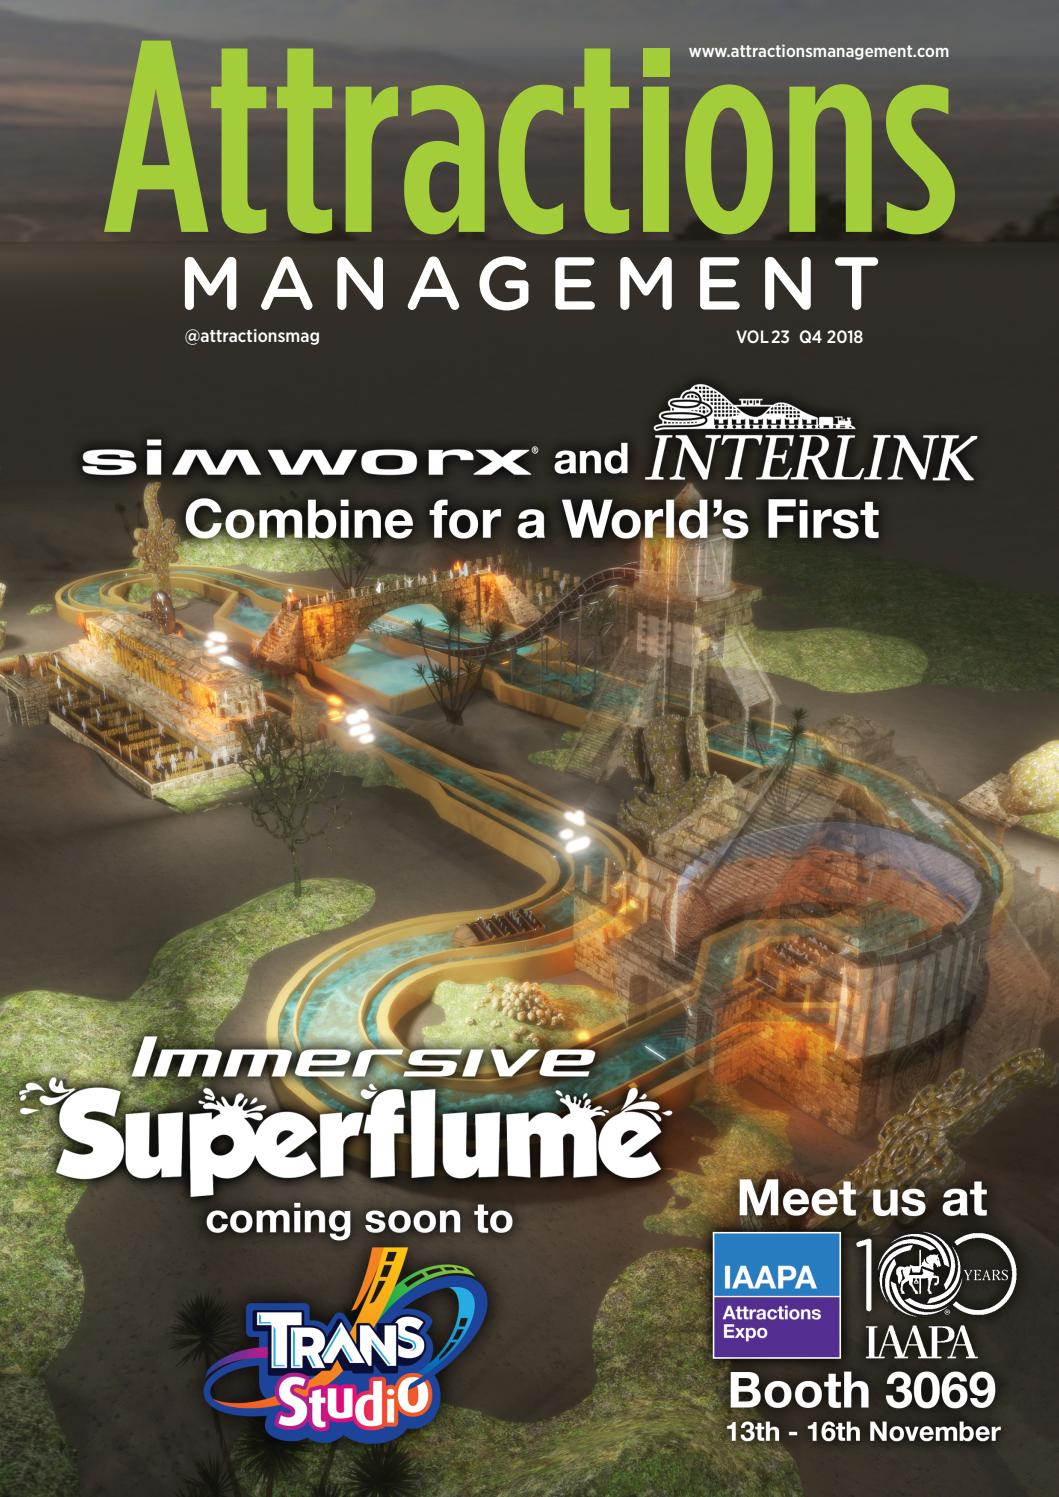 cd640a07a2a7 Attractions Management Issue 4 2018 by Leisure Media - issuu